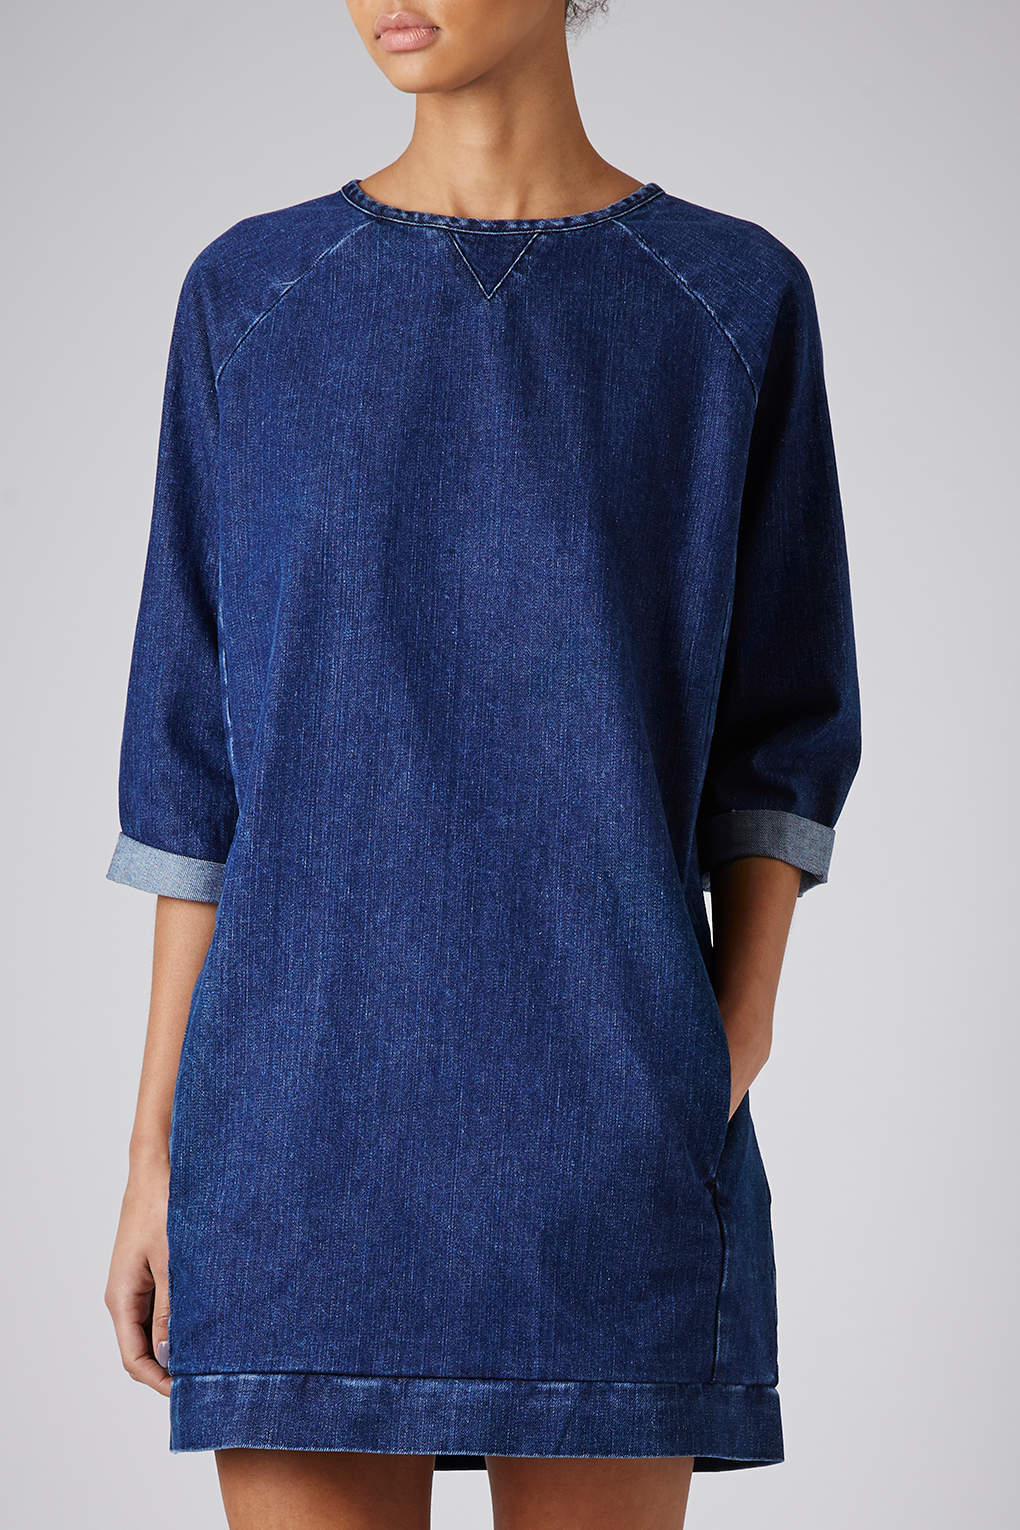 Lyst topshop moto denim jumper dress in blue for Womens denim shirts topshop